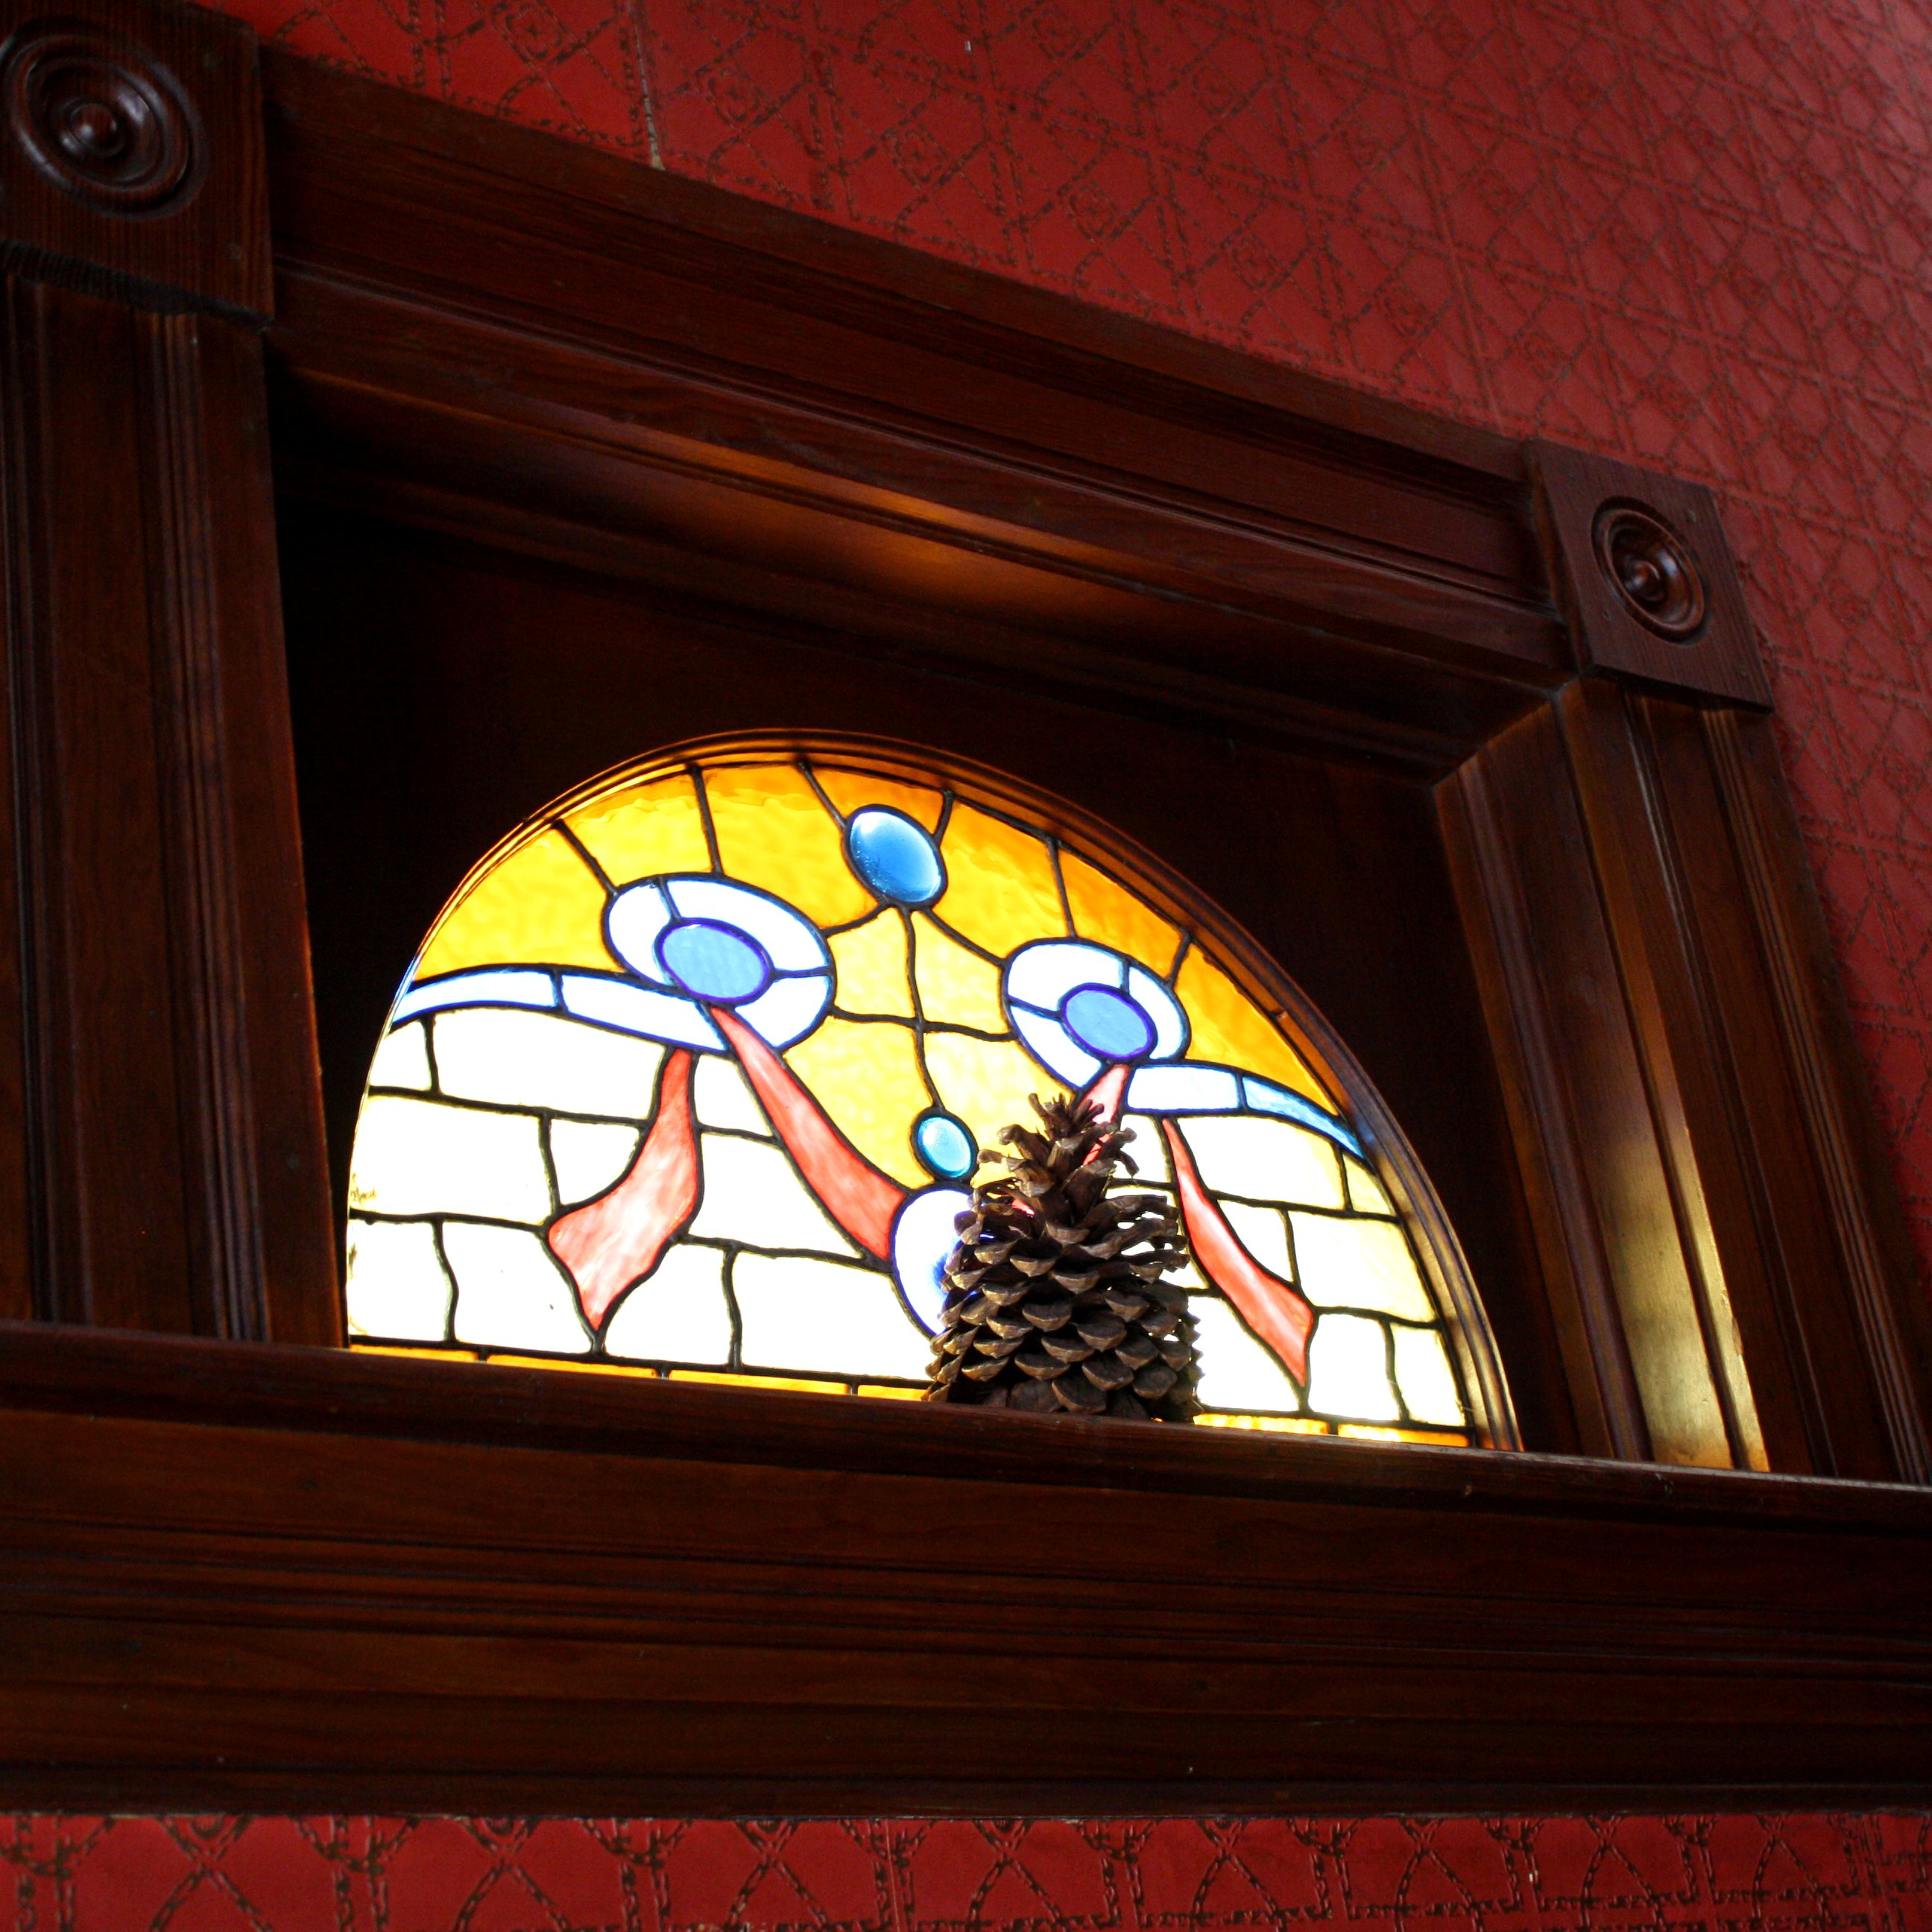 Half Circle Stained Glass Window With Pinecone On Sill